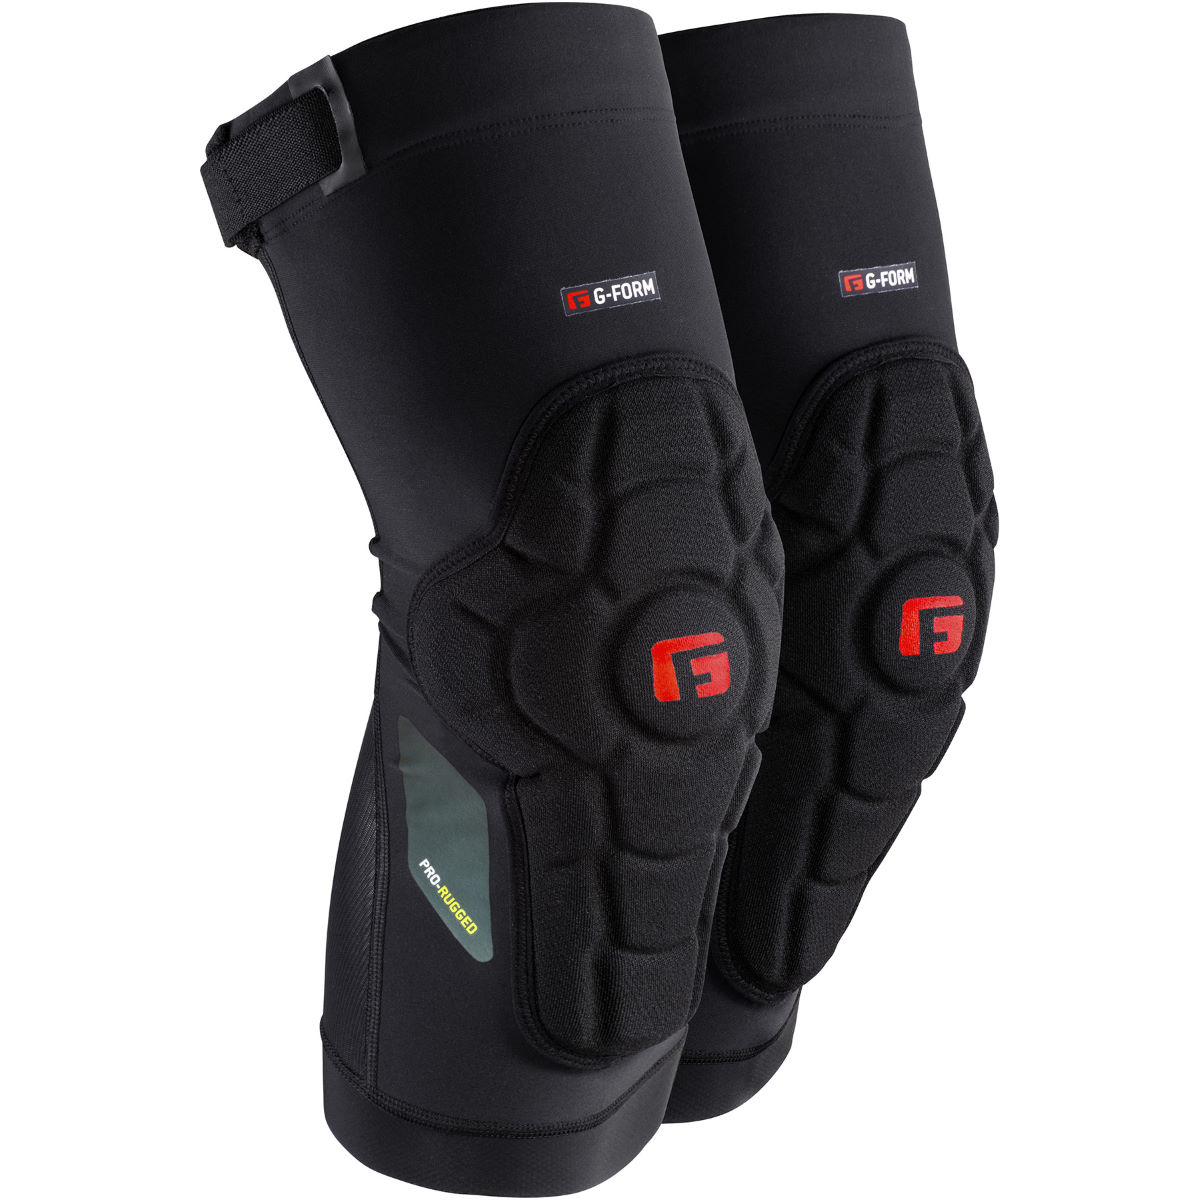 G-Form G-Form Pro Rugged Knee Pads   Knee Pads